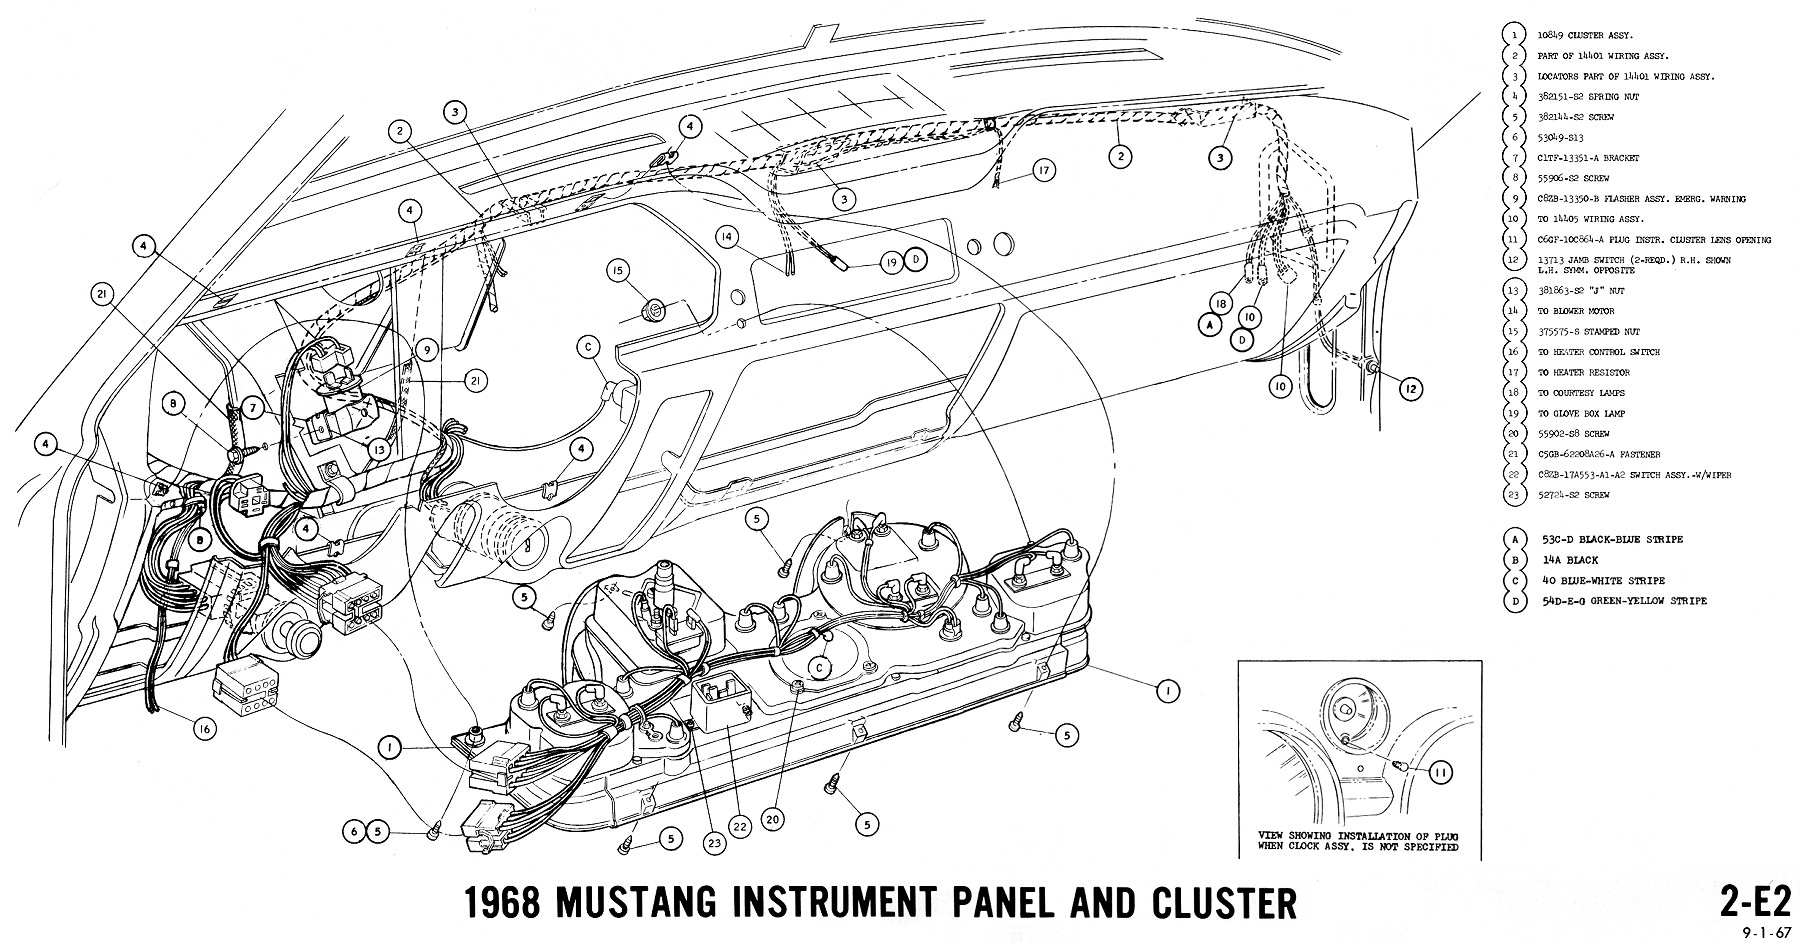 hight resolution of 1968 mustang wiring diagrams and vacuum schematics average joe 1968 mustang wiring diagram instruments 2